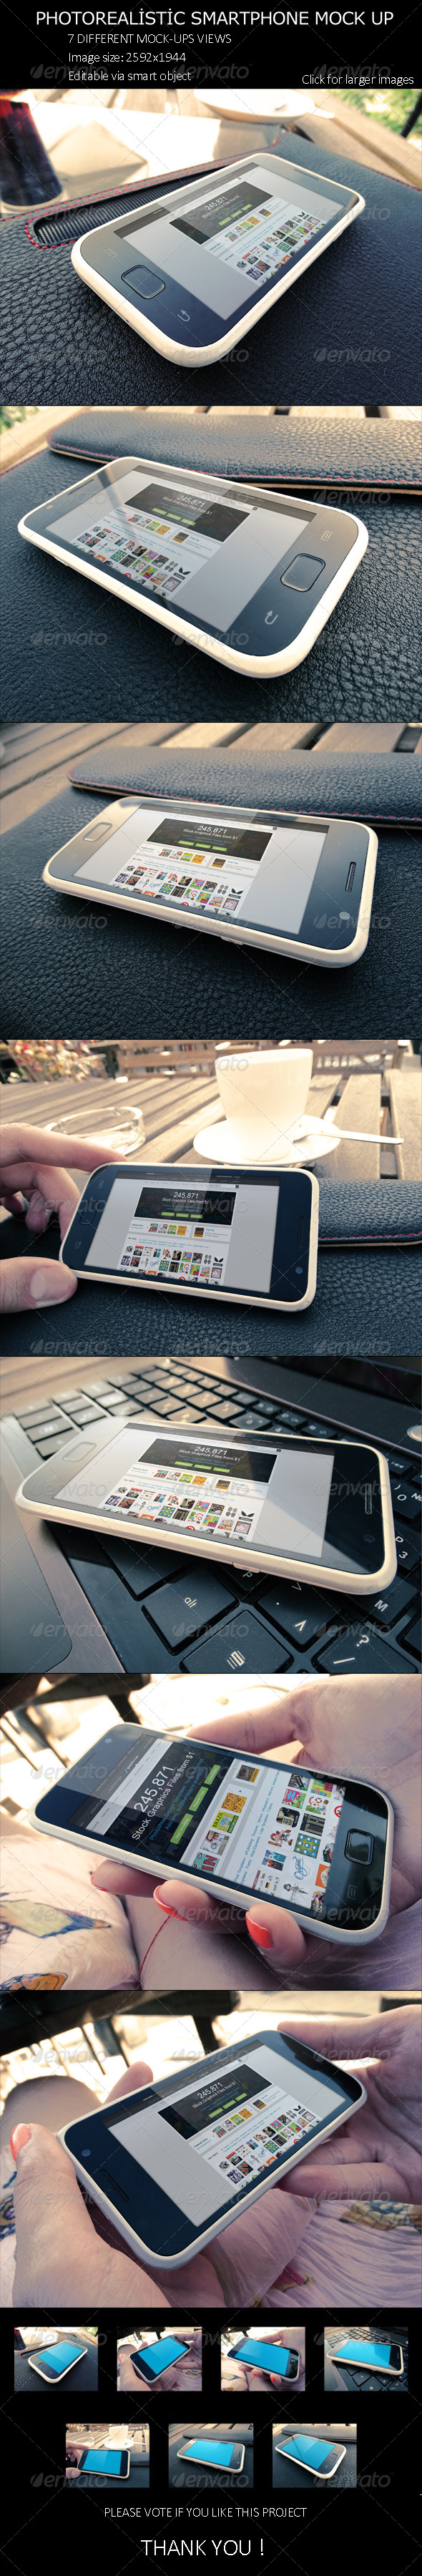 GraphicRiver PhotoRealistic SmartPhone Mock Up 8220689